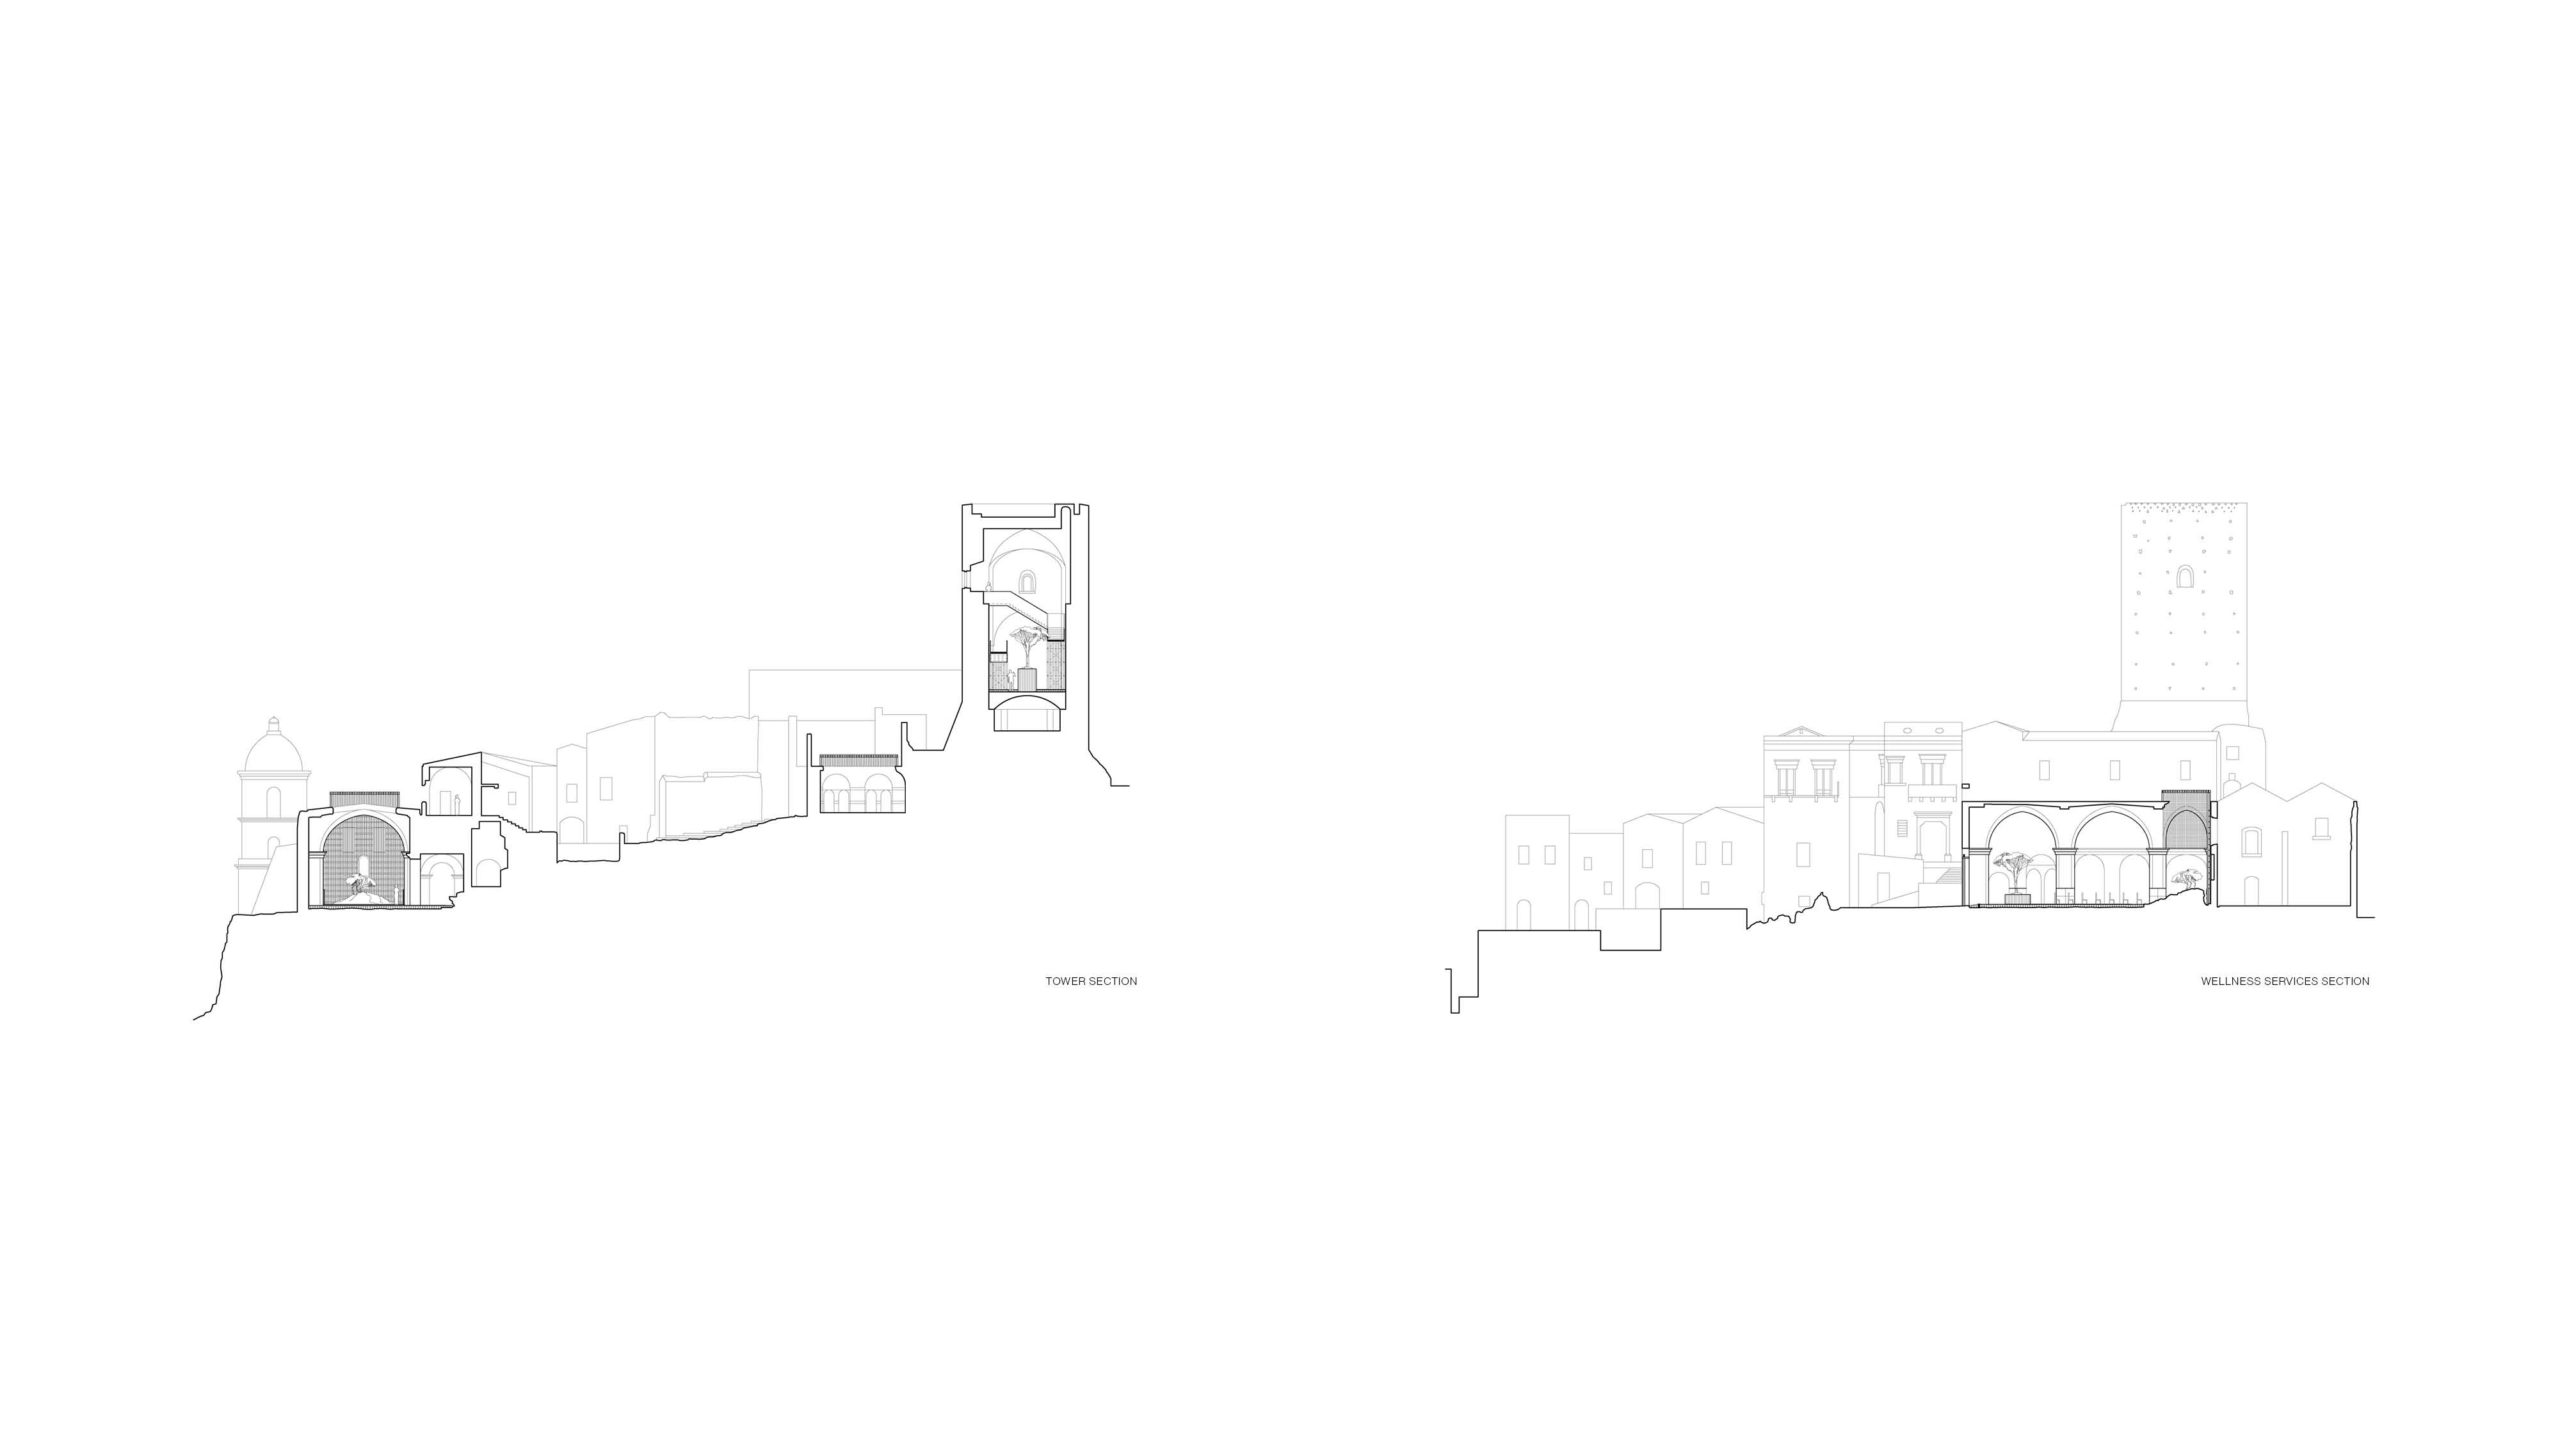 Unbuilt : TRACES - GHOST TOWN REFUGE, at Craco, Italy, by Claudio C. Araya, Yahya Abdullah 48